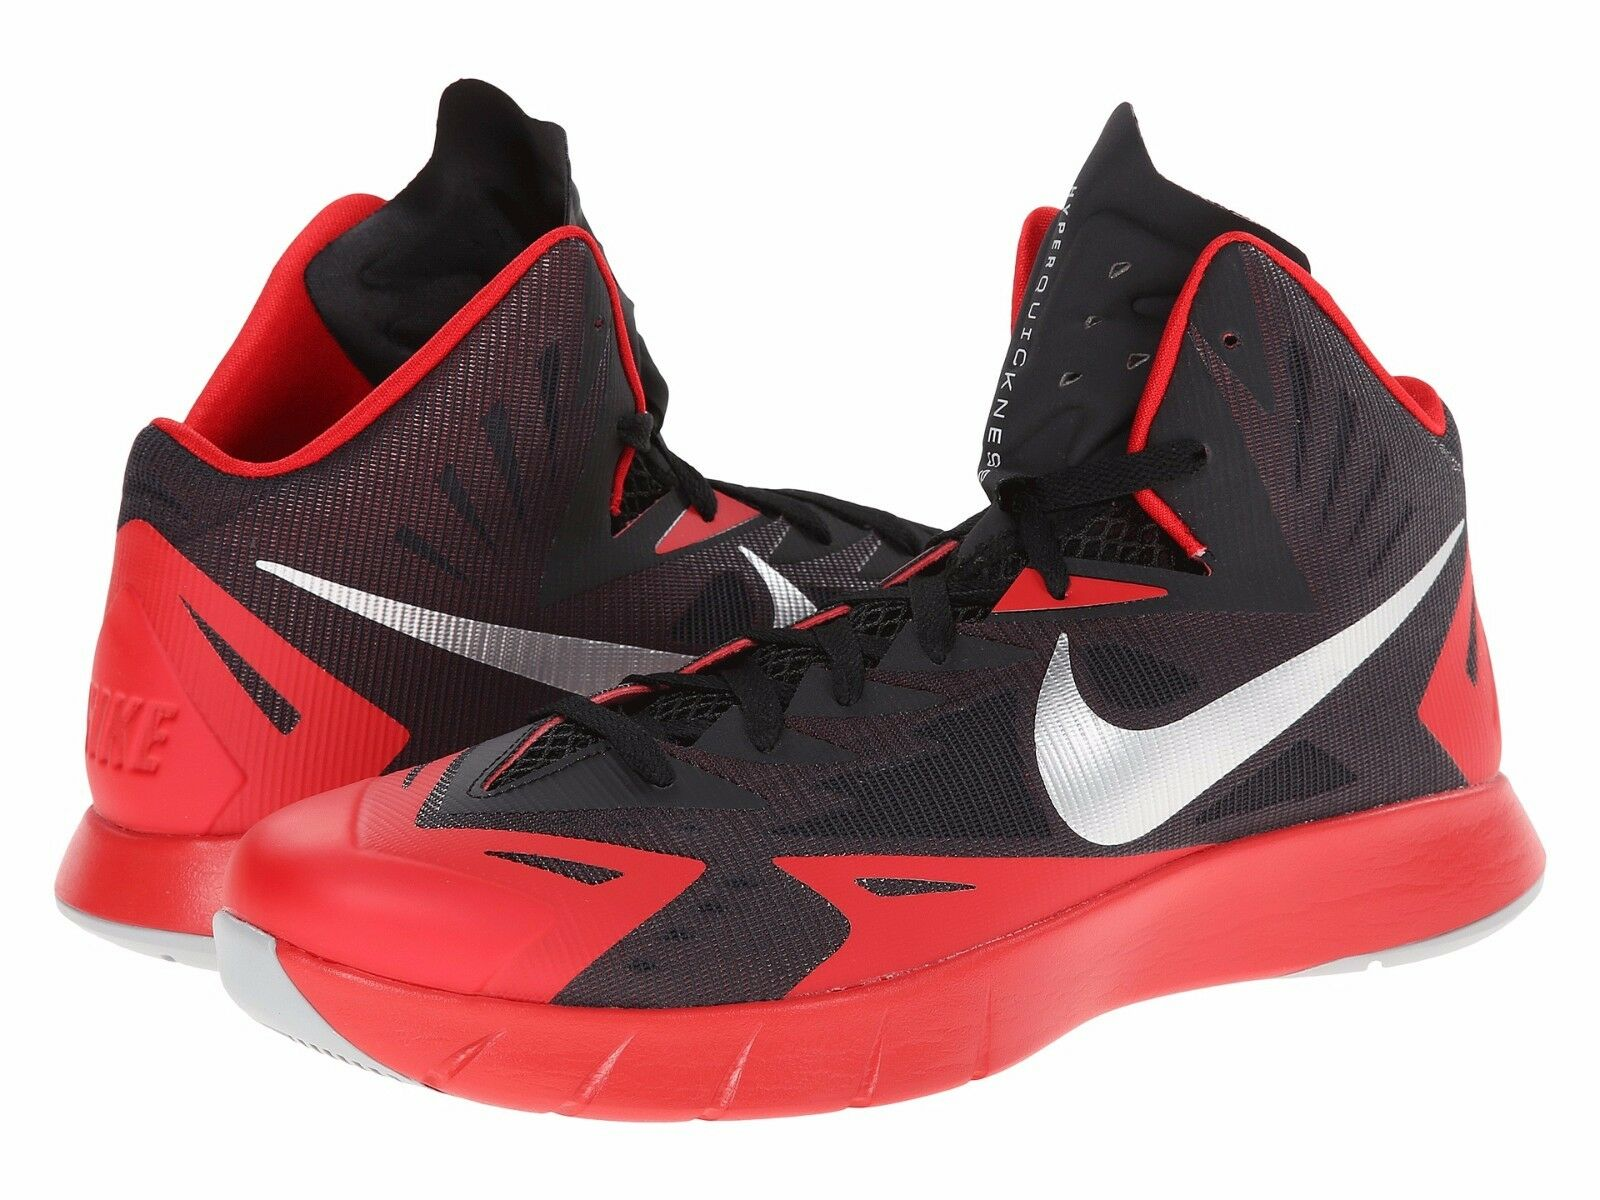 Men's Nike Lunar Hyperquickness Basketball shoes, 652777 006 Sizes 8-13 Blk Red